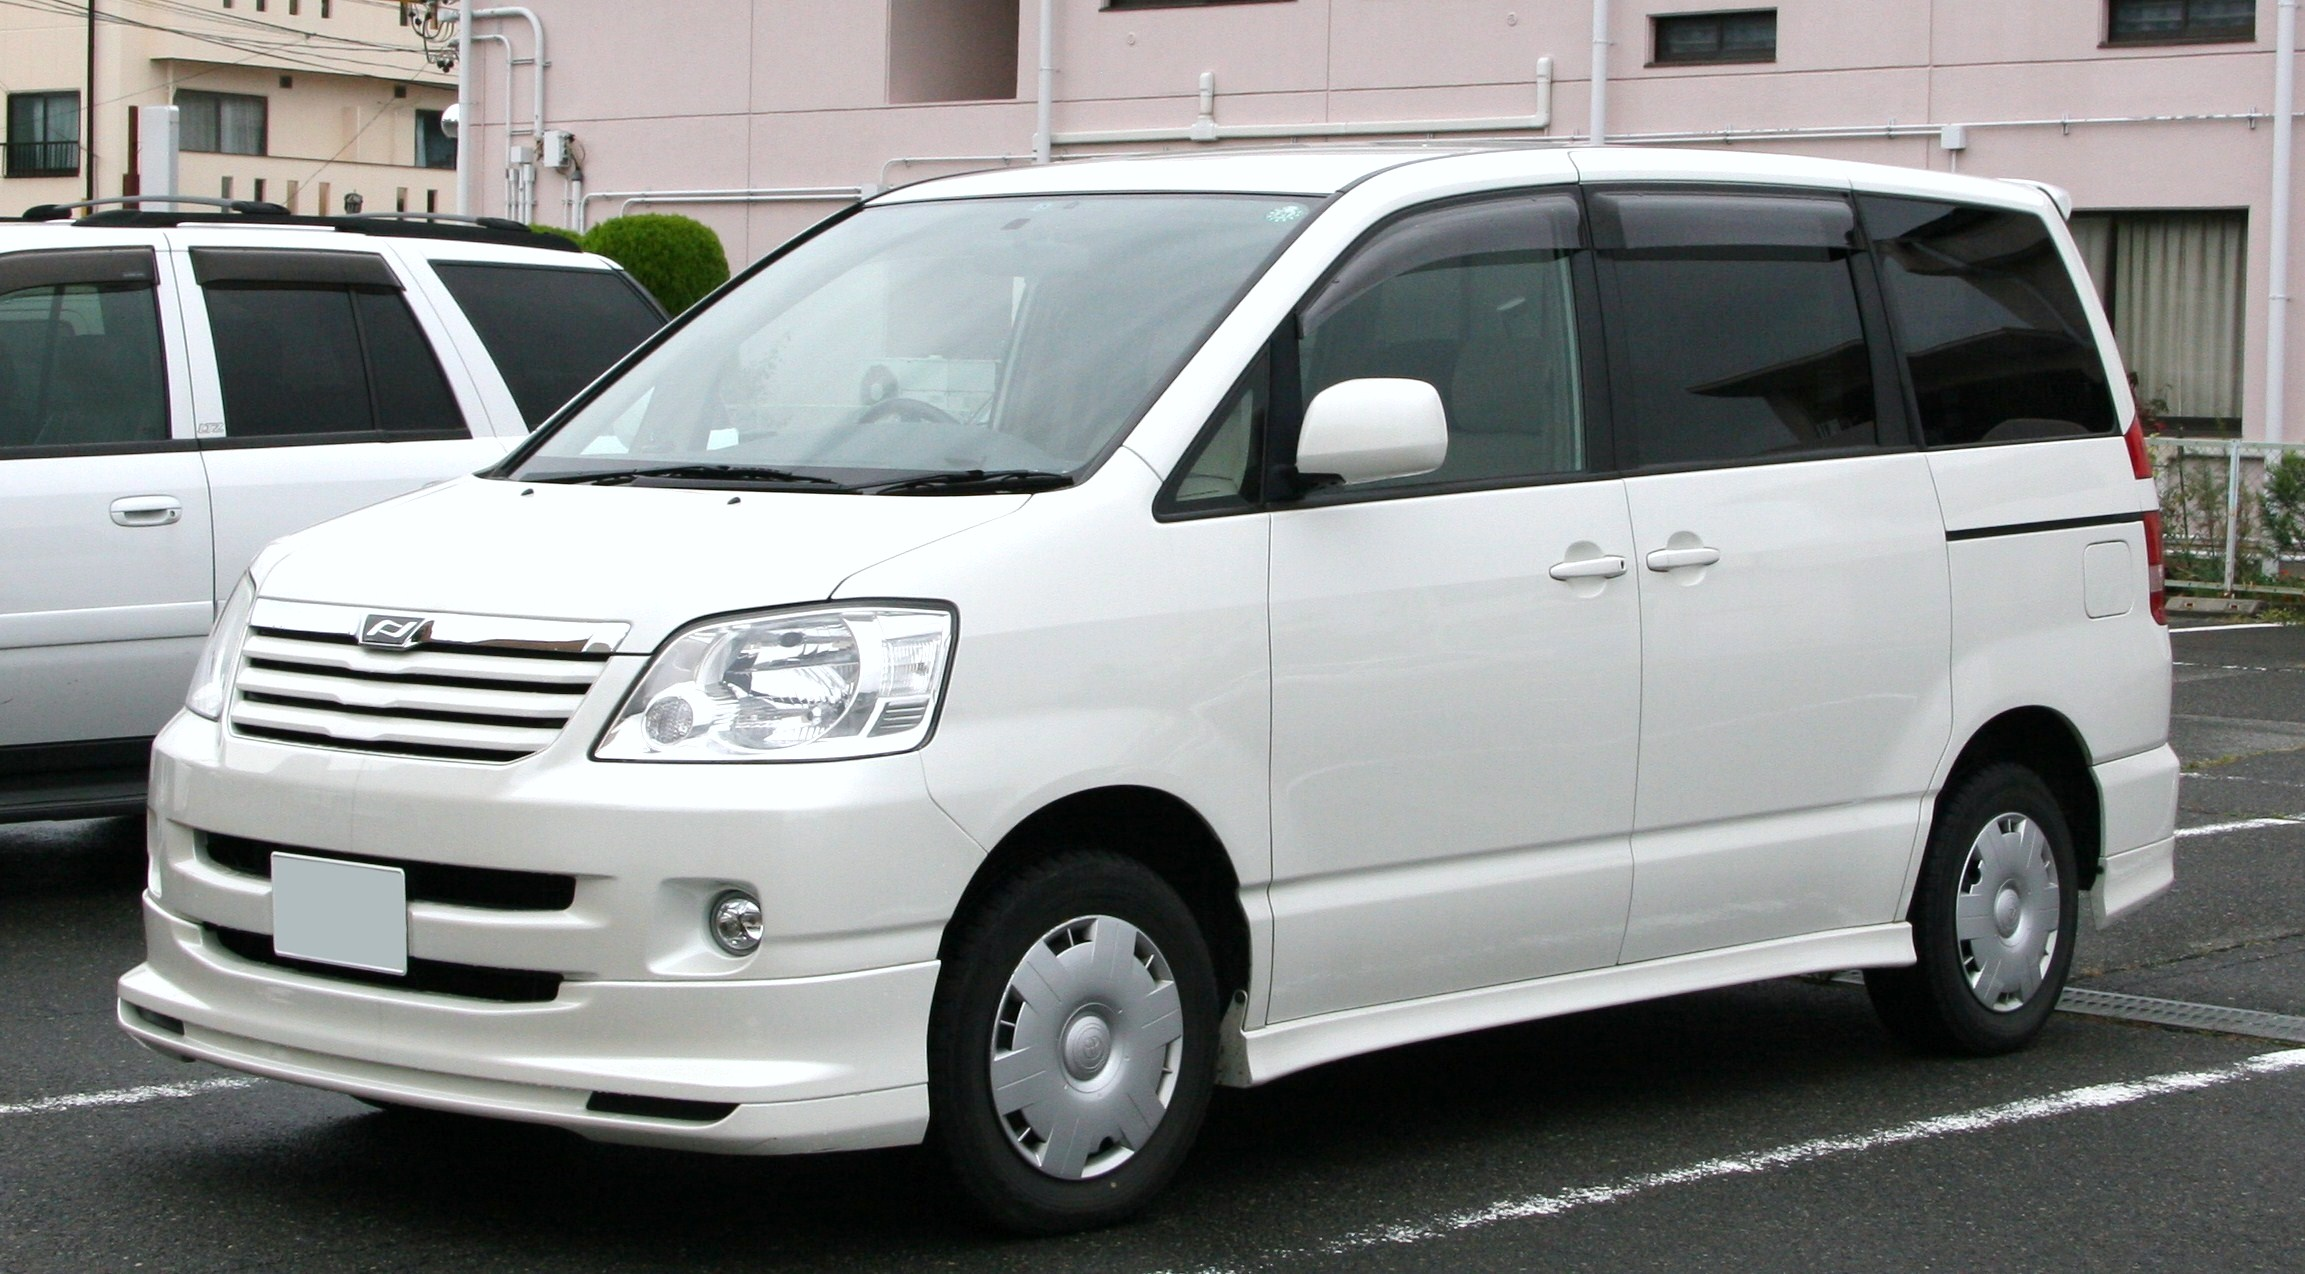 File:2001-2004 Toyota Noah.jpg - Wikimedia Commons